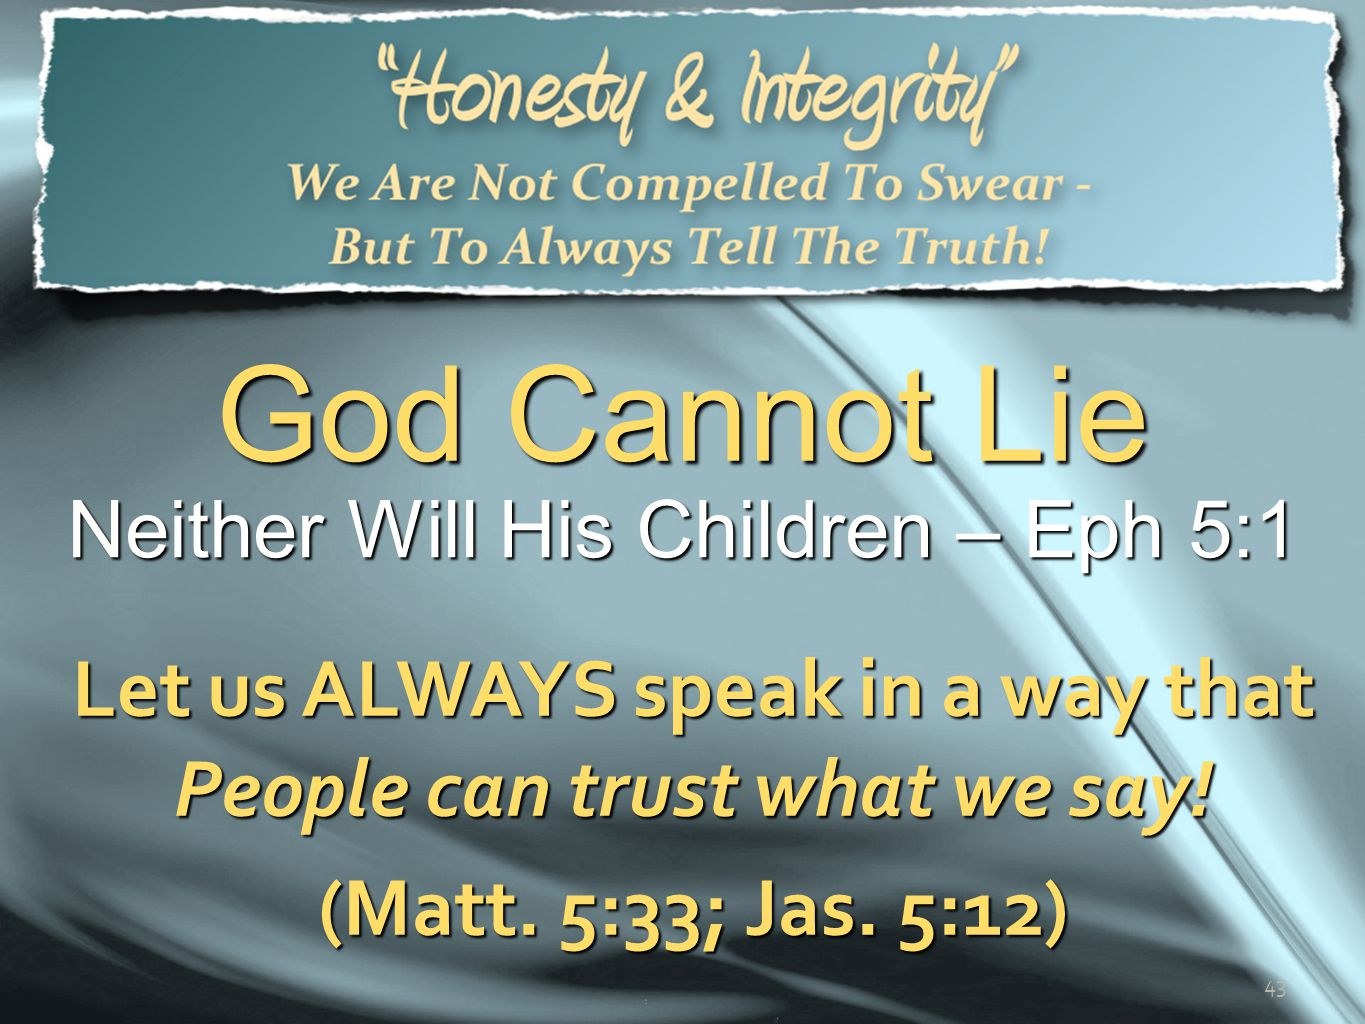 God Cannot Lie Neither Will His Children – Eph 5:1. Let us ALWAYS speak in a way that People can trust what we say!